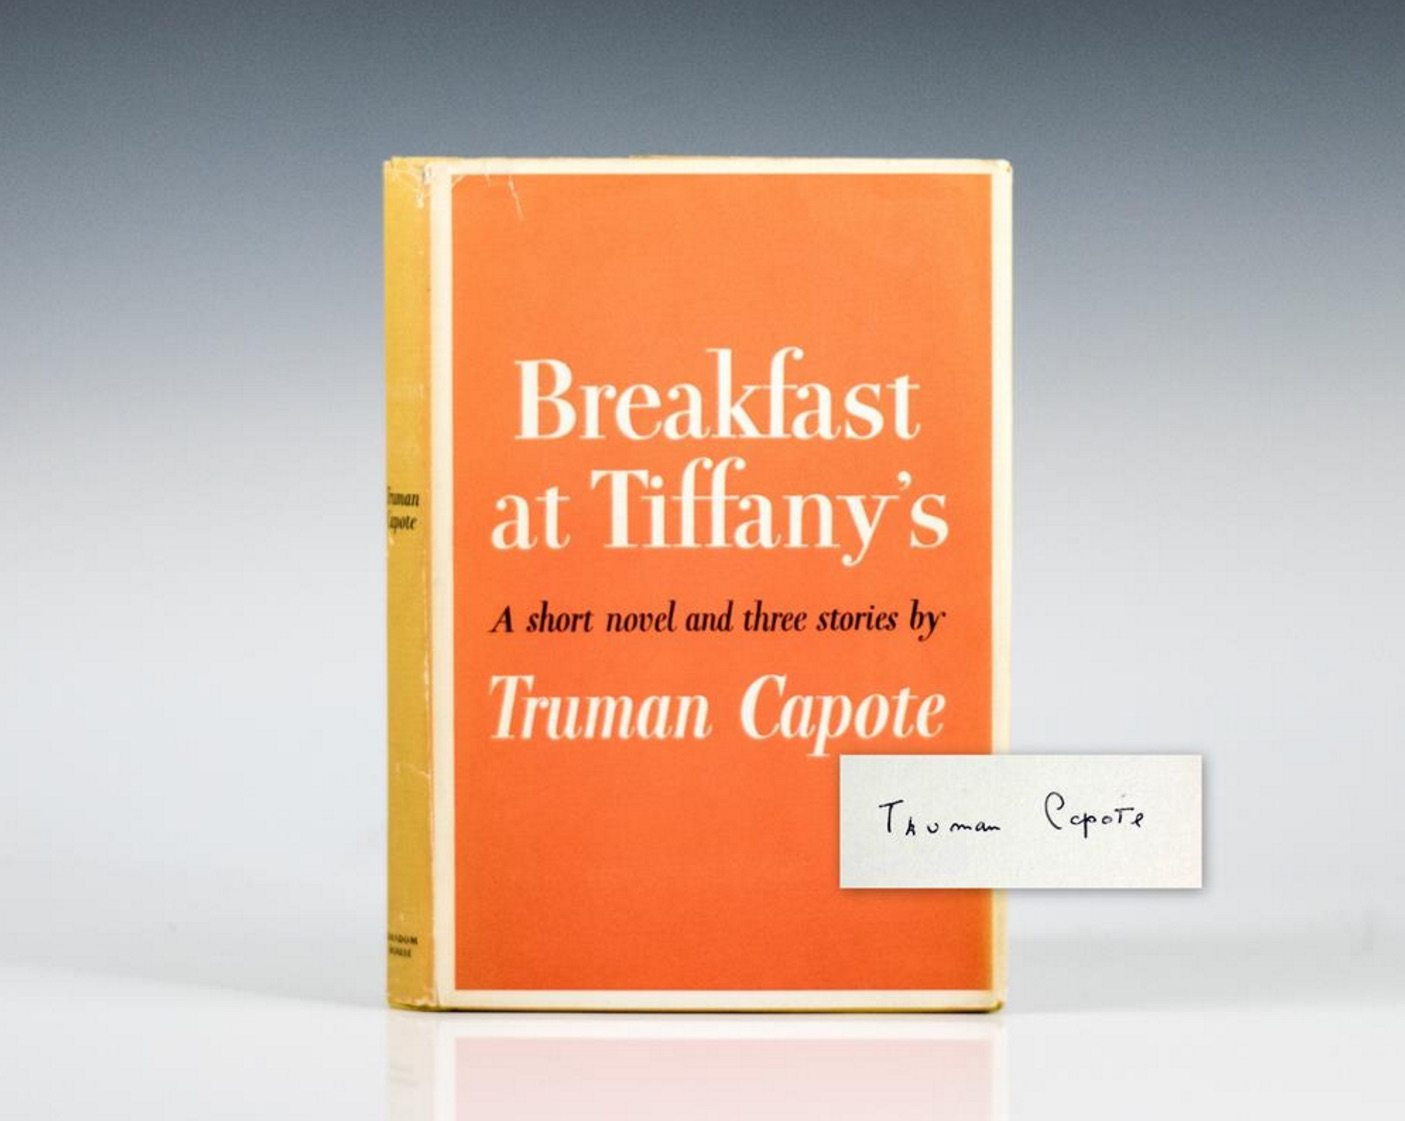 First Edition Breakfast at Tiffany's by Truman Capote